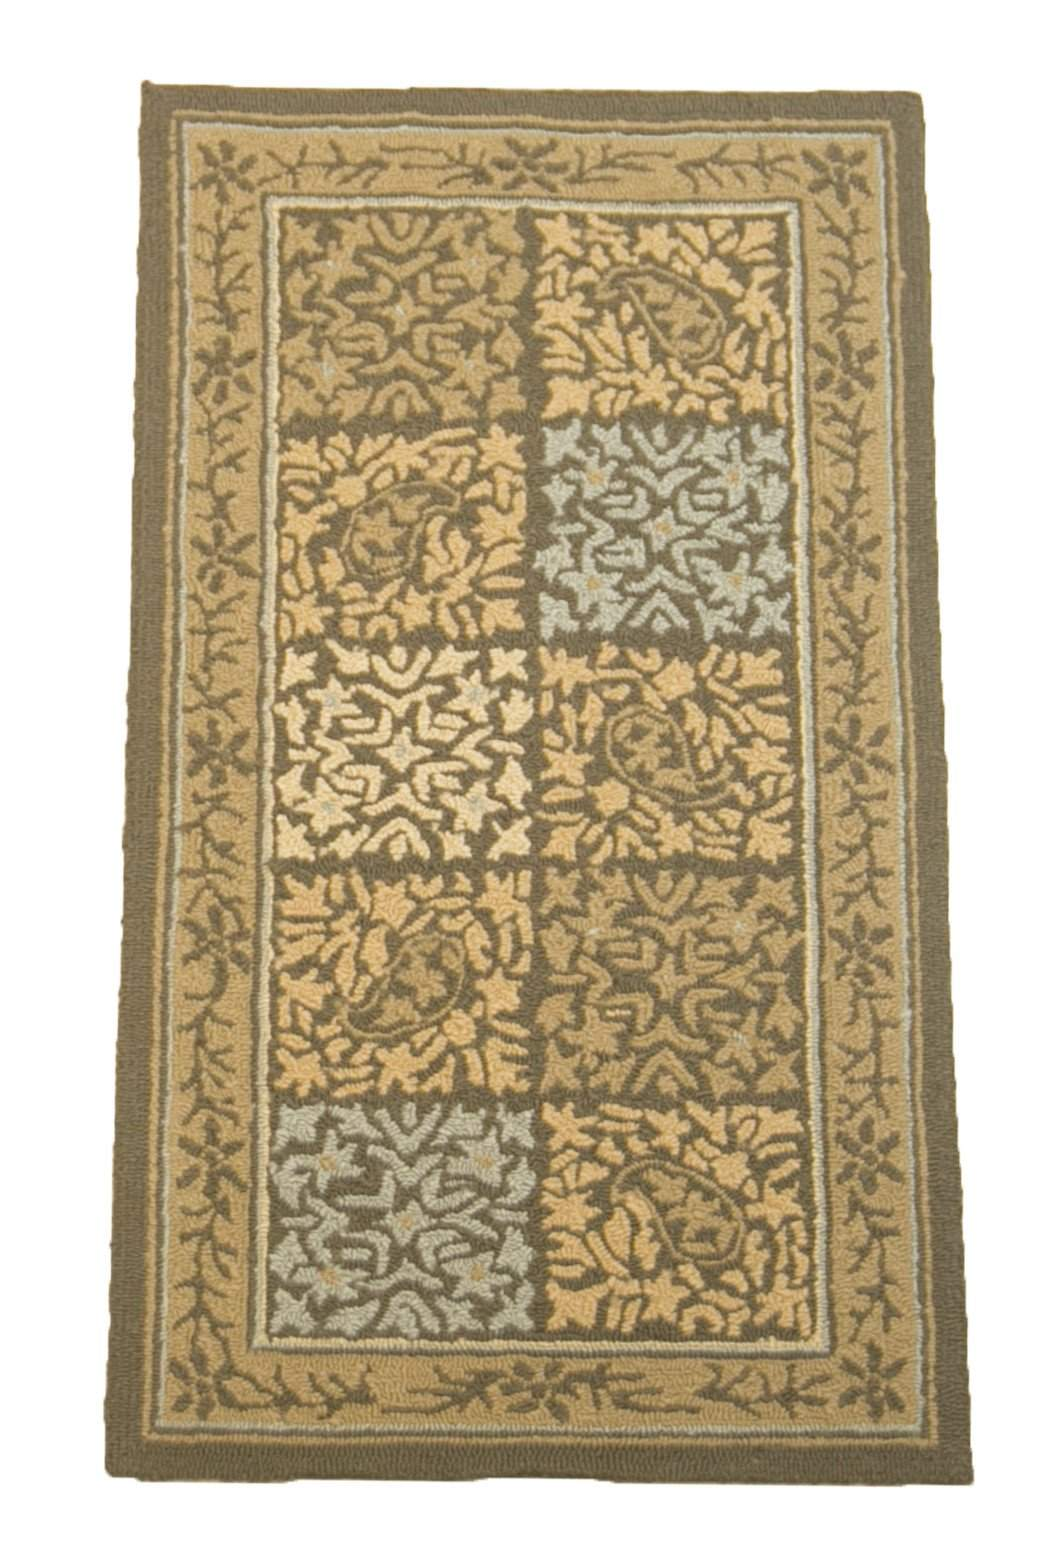 2' x 4' Covington Casual Indoor Small Runner Rug Area Rugs - Rug Shop and More